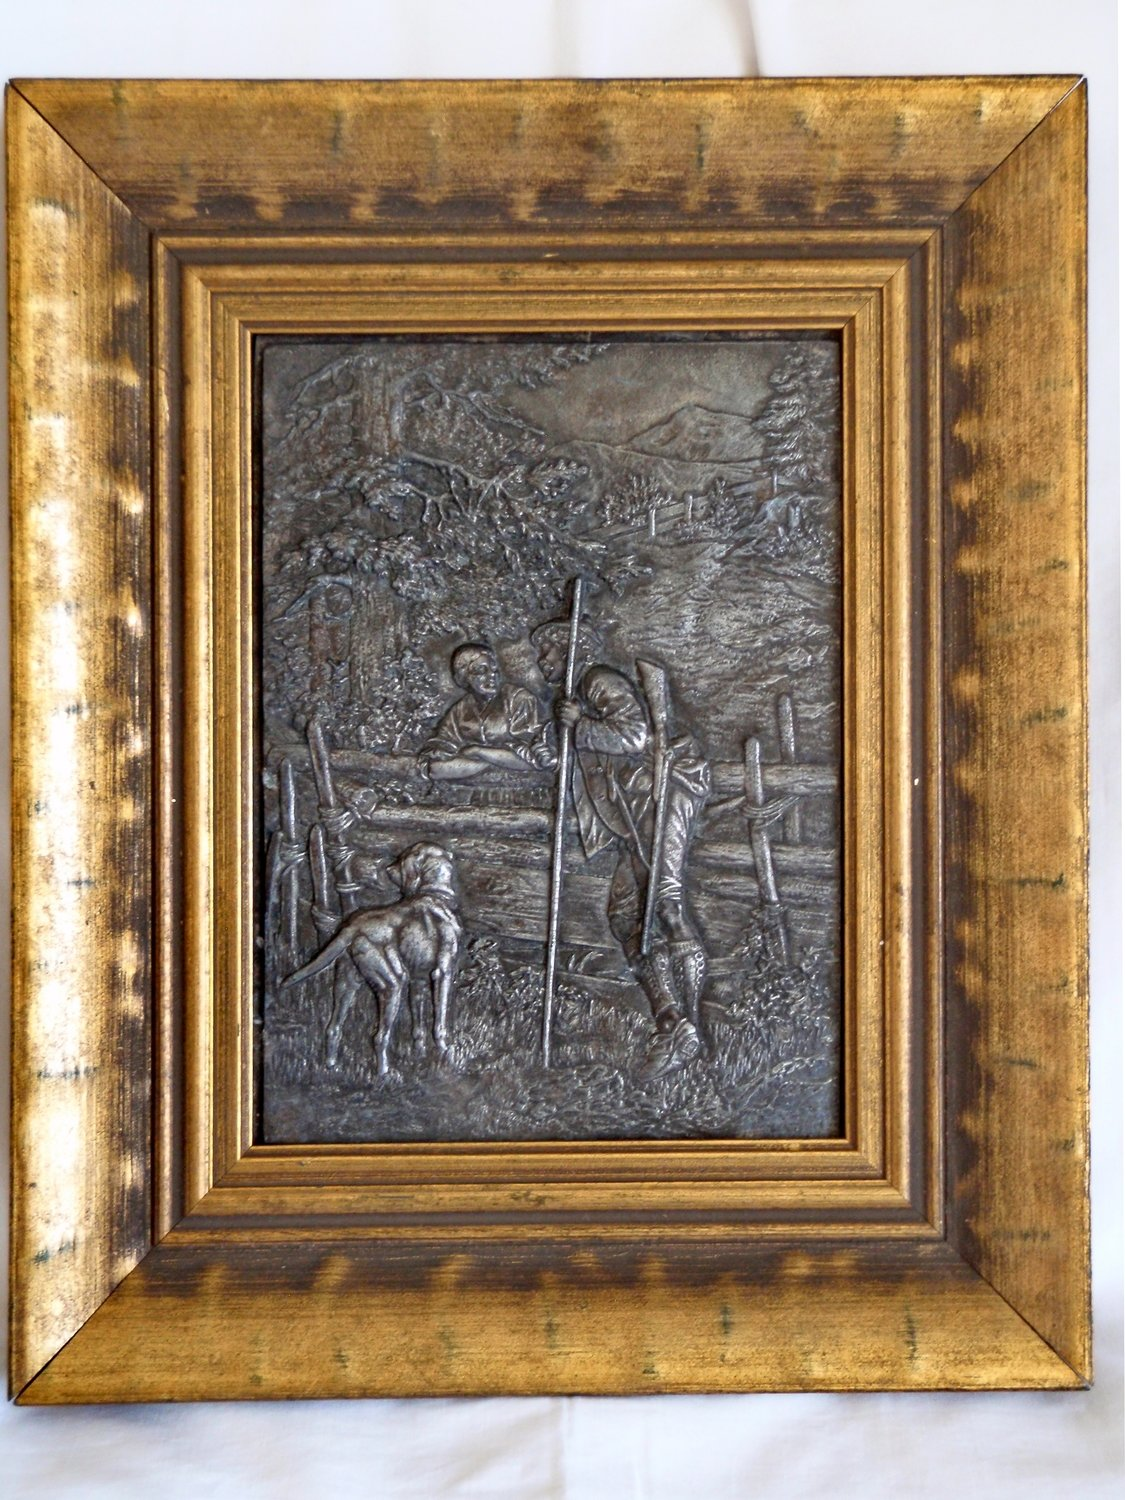 Antique Framed Metal Art Folk Bas Relief Country Life Hunting Germanic